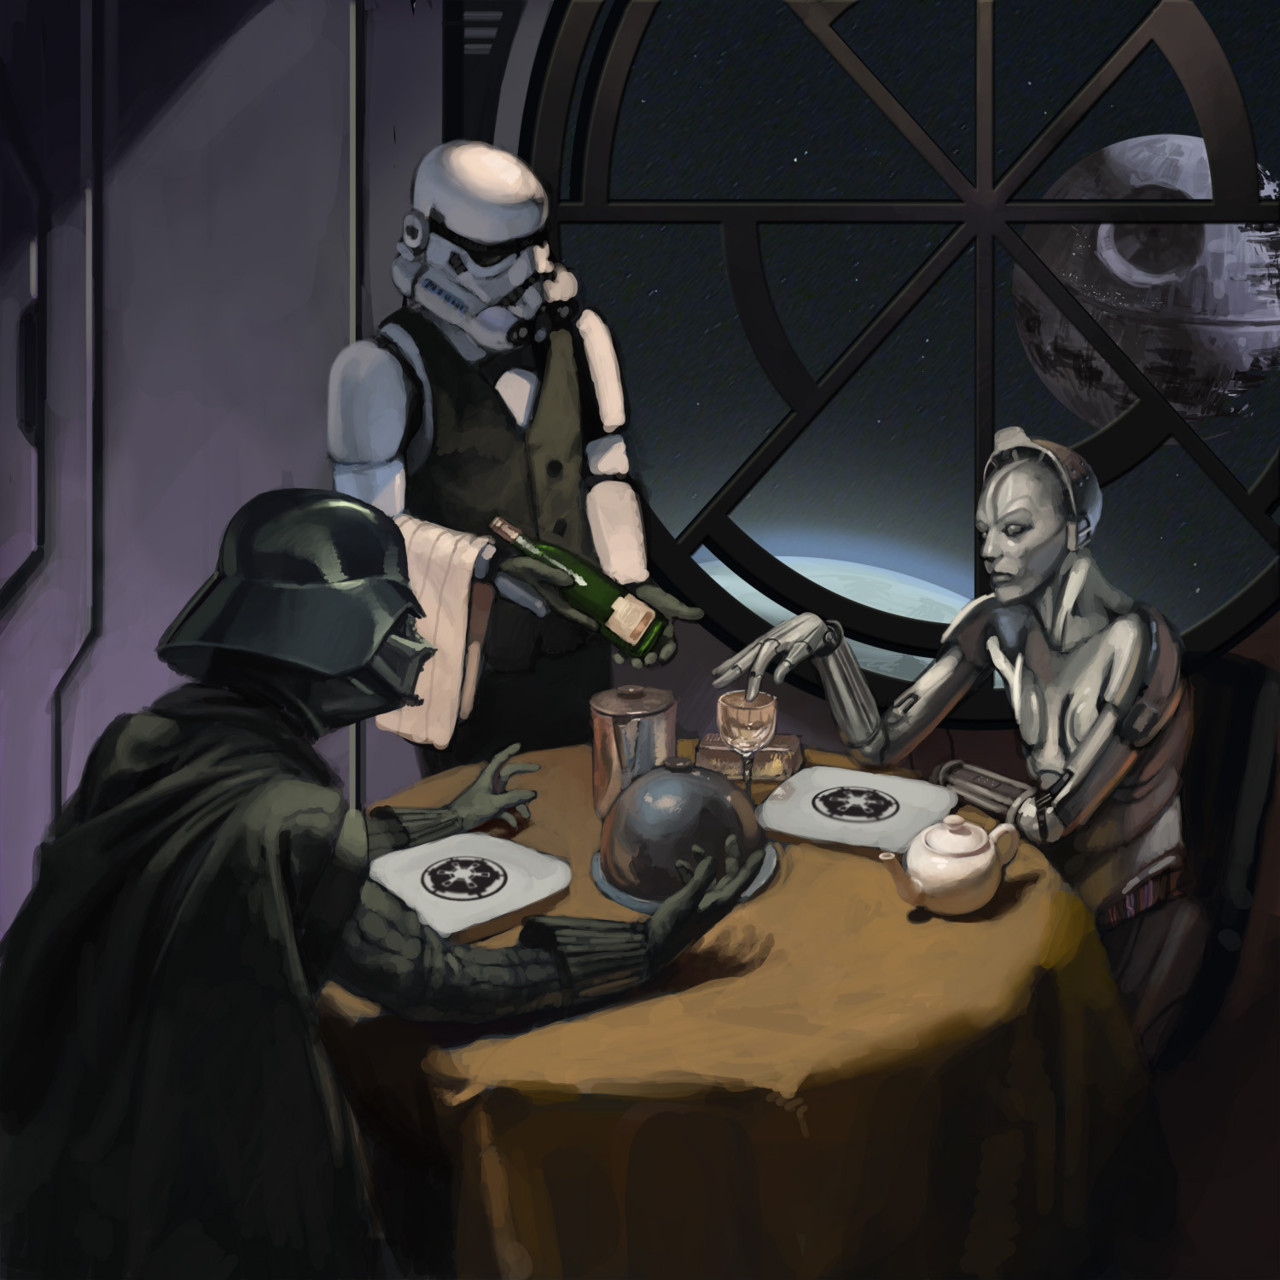 ianbrooks:  Star Wars Date Night by Andrew Theophilopoulos Darth Vader and the maschinenmensch from Metropolis? That's a lot of robotic parts that would need oiling.